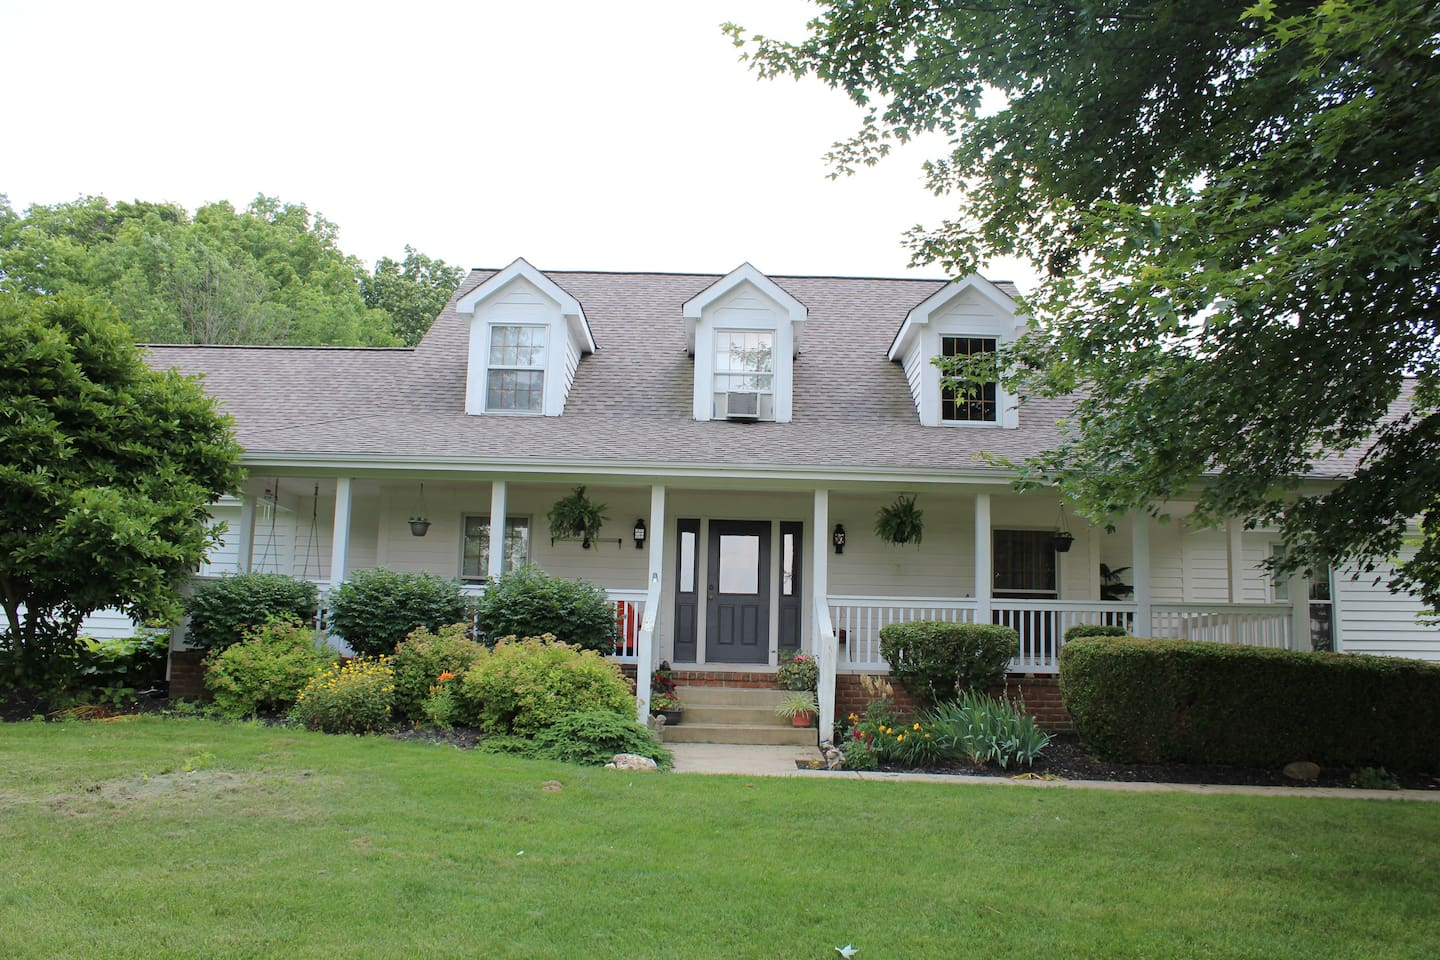 Enjoy nature in our lovely country retreat close to Columbus